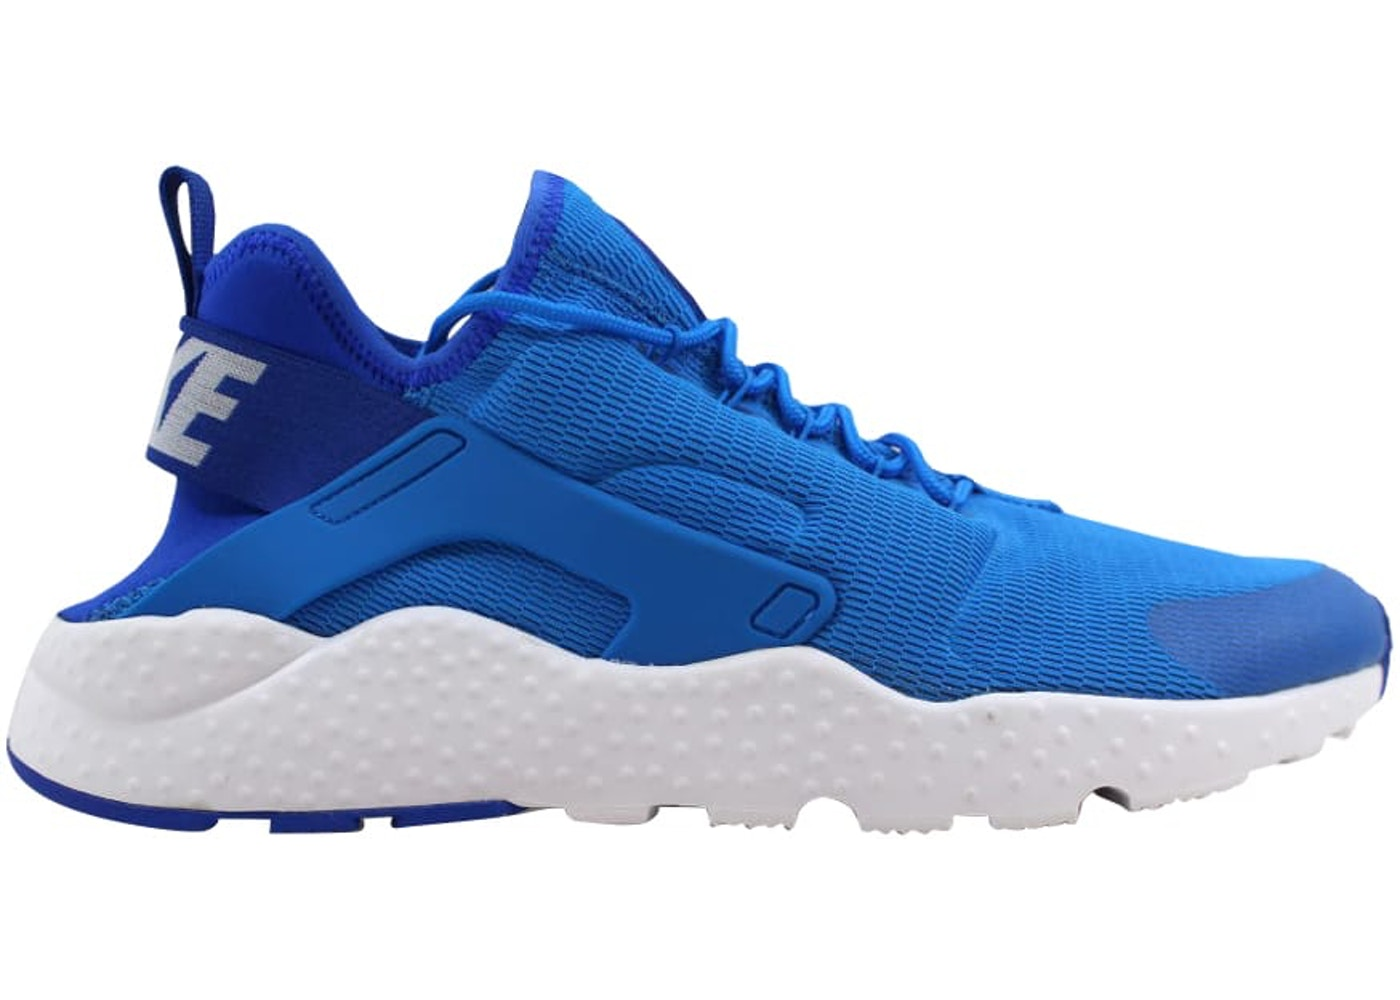 best price factory authentic reasonably priced Nike Air Huarache Run Ultra Photo Blue/White (W) - 819151-400